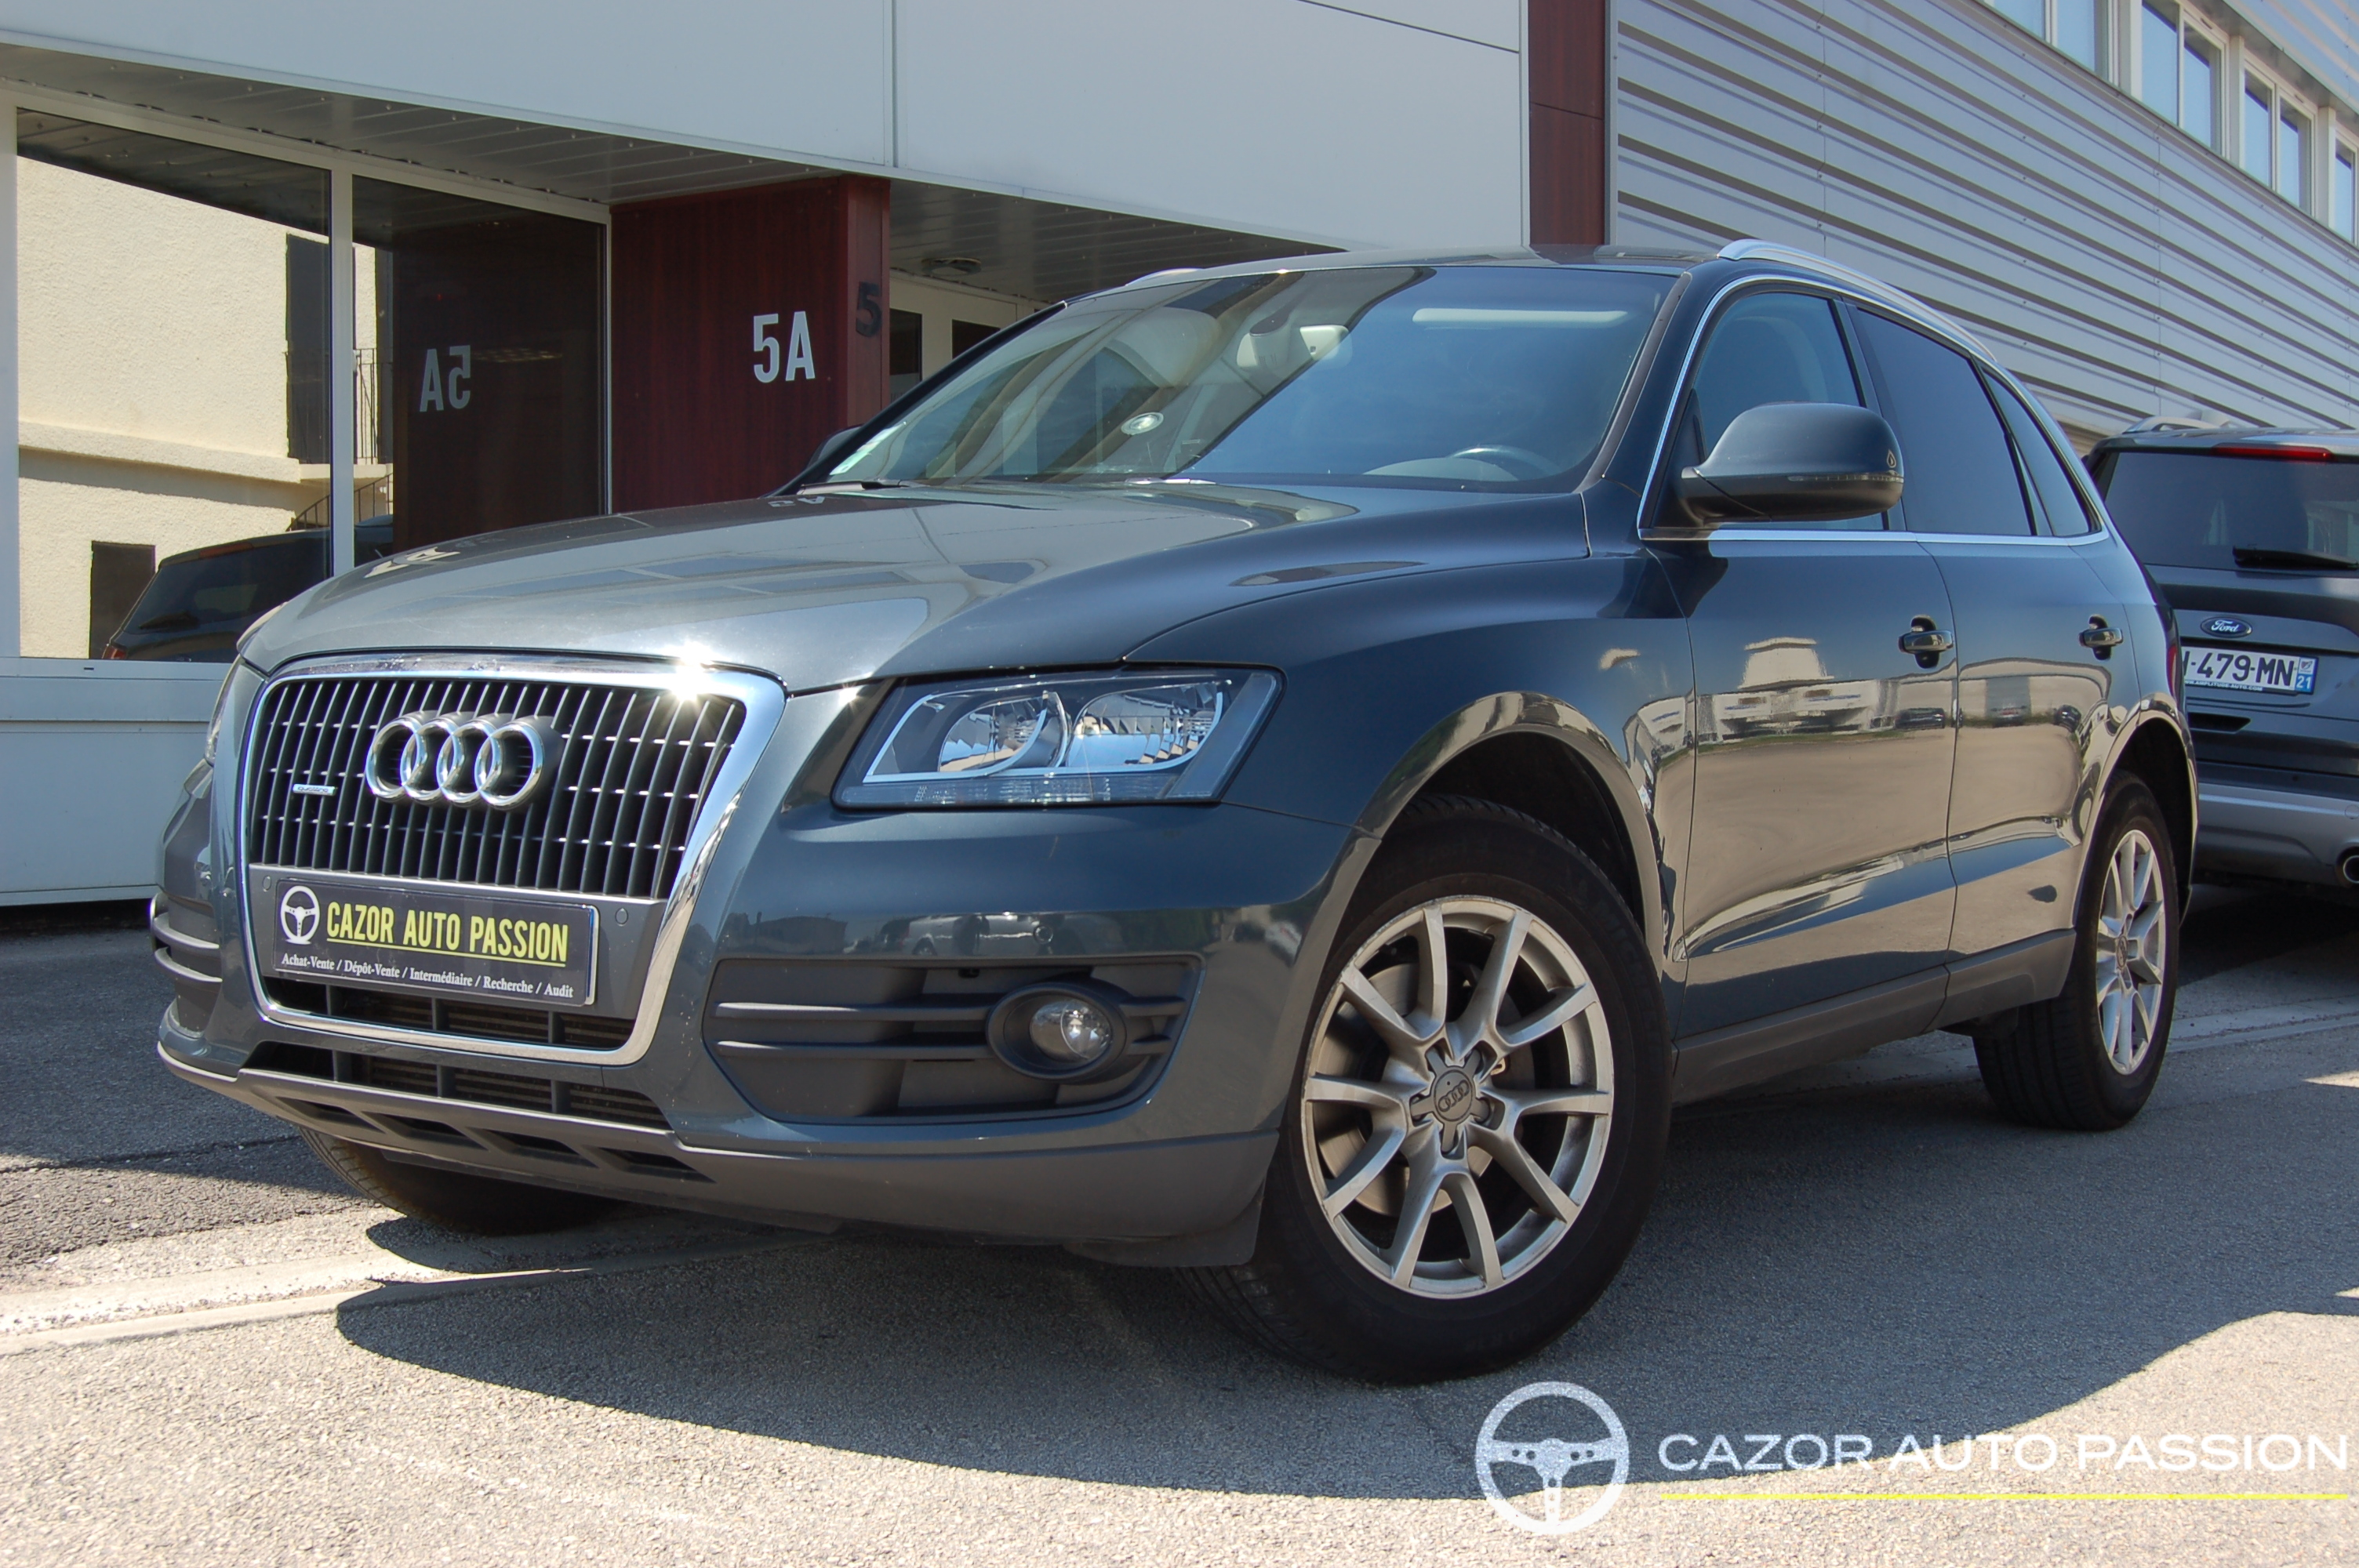 audi q5 2 0 tdi 177 ch ambition luxe quattro s tronic cazor auto passion. Black Bedroom Furniture Sets. Home Design Ideas